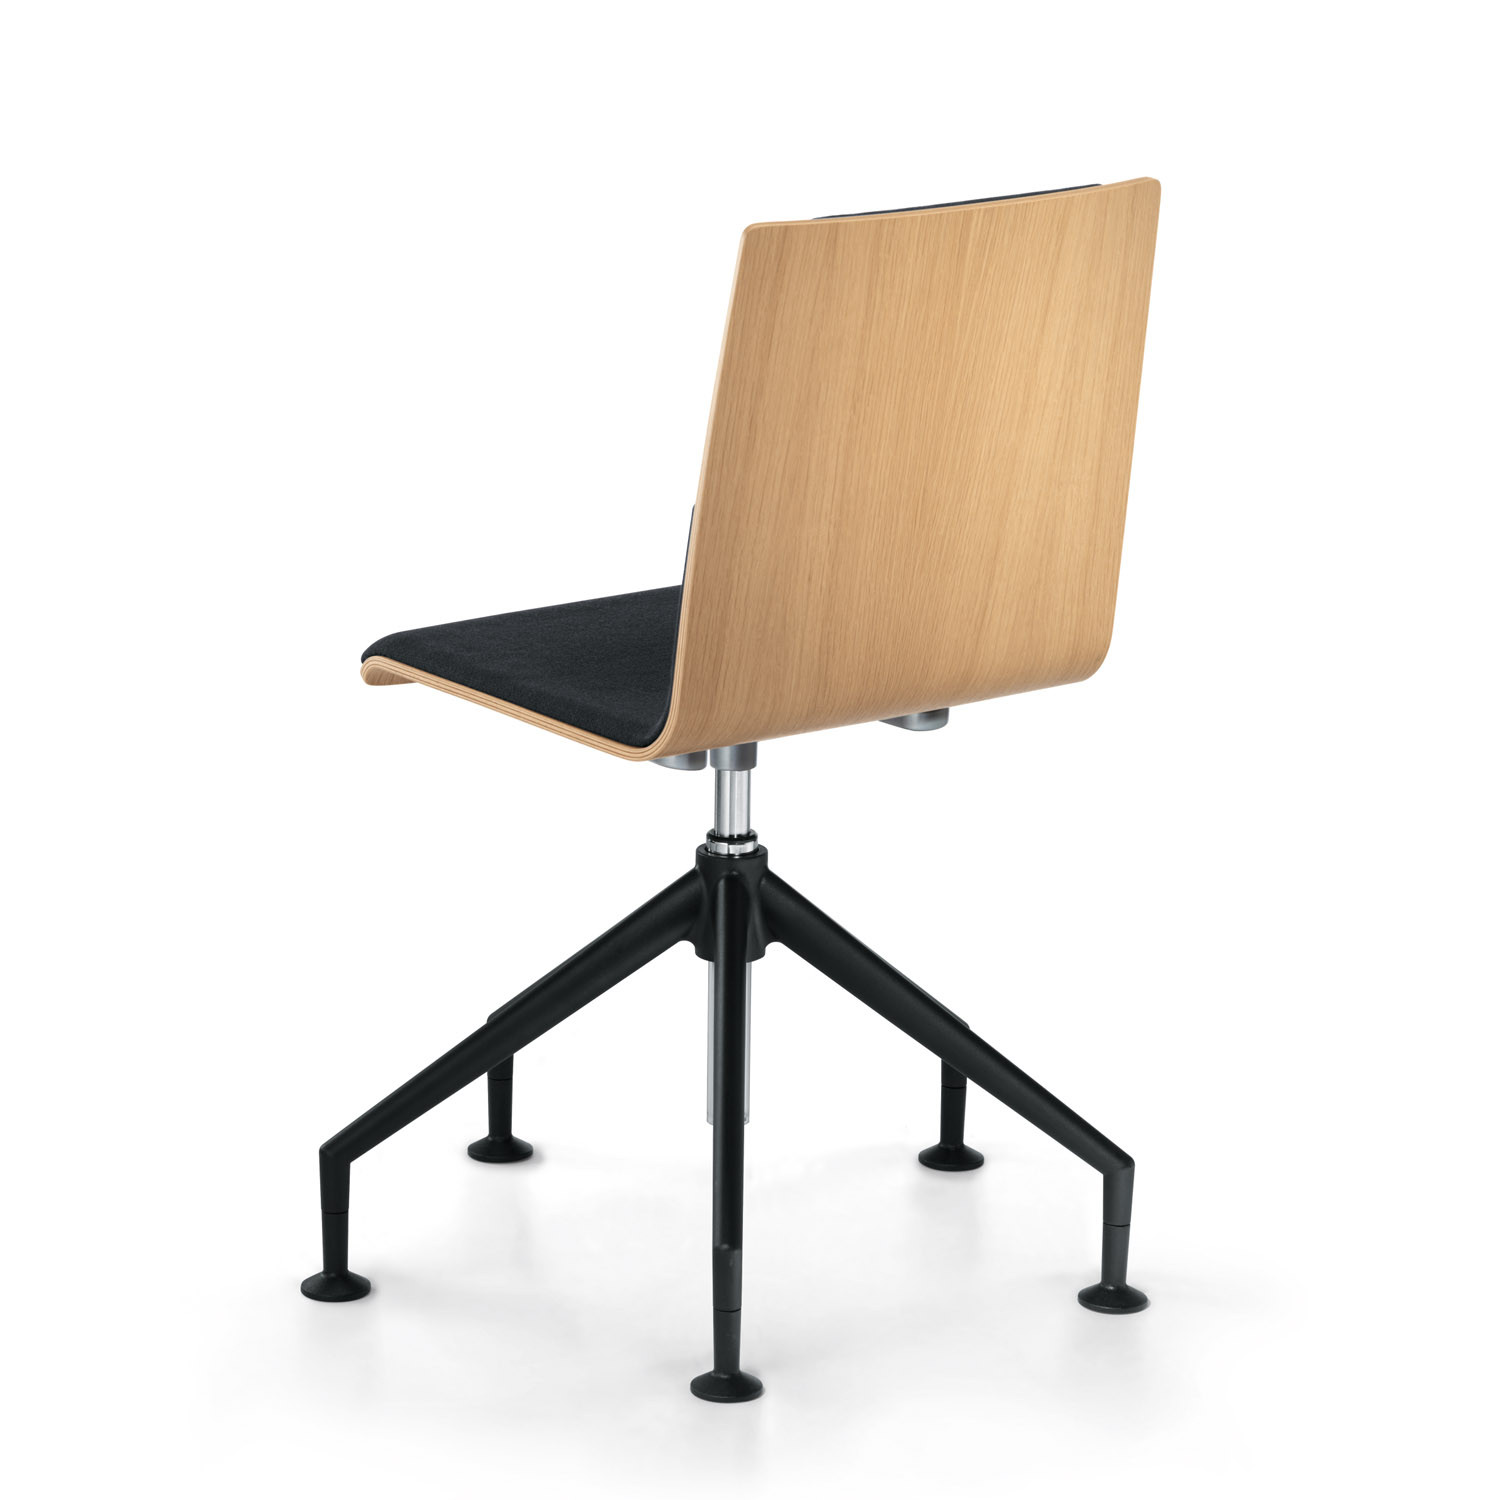 Meet Office Meeting Chair